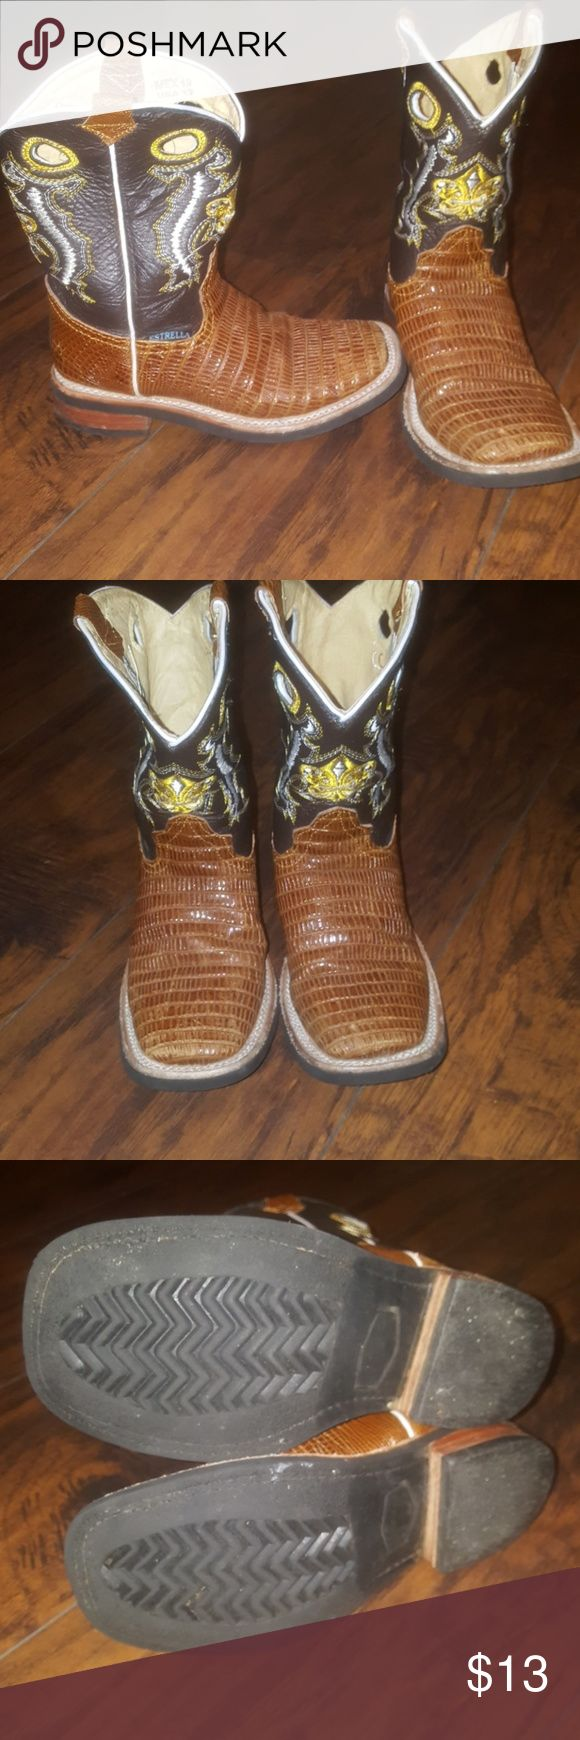 BOYS COWBOY BOOTS Size 12 American boys cowboy boots Estrella Brand No major flaws just had stored Ships next day Black and Brown Shoes Boots